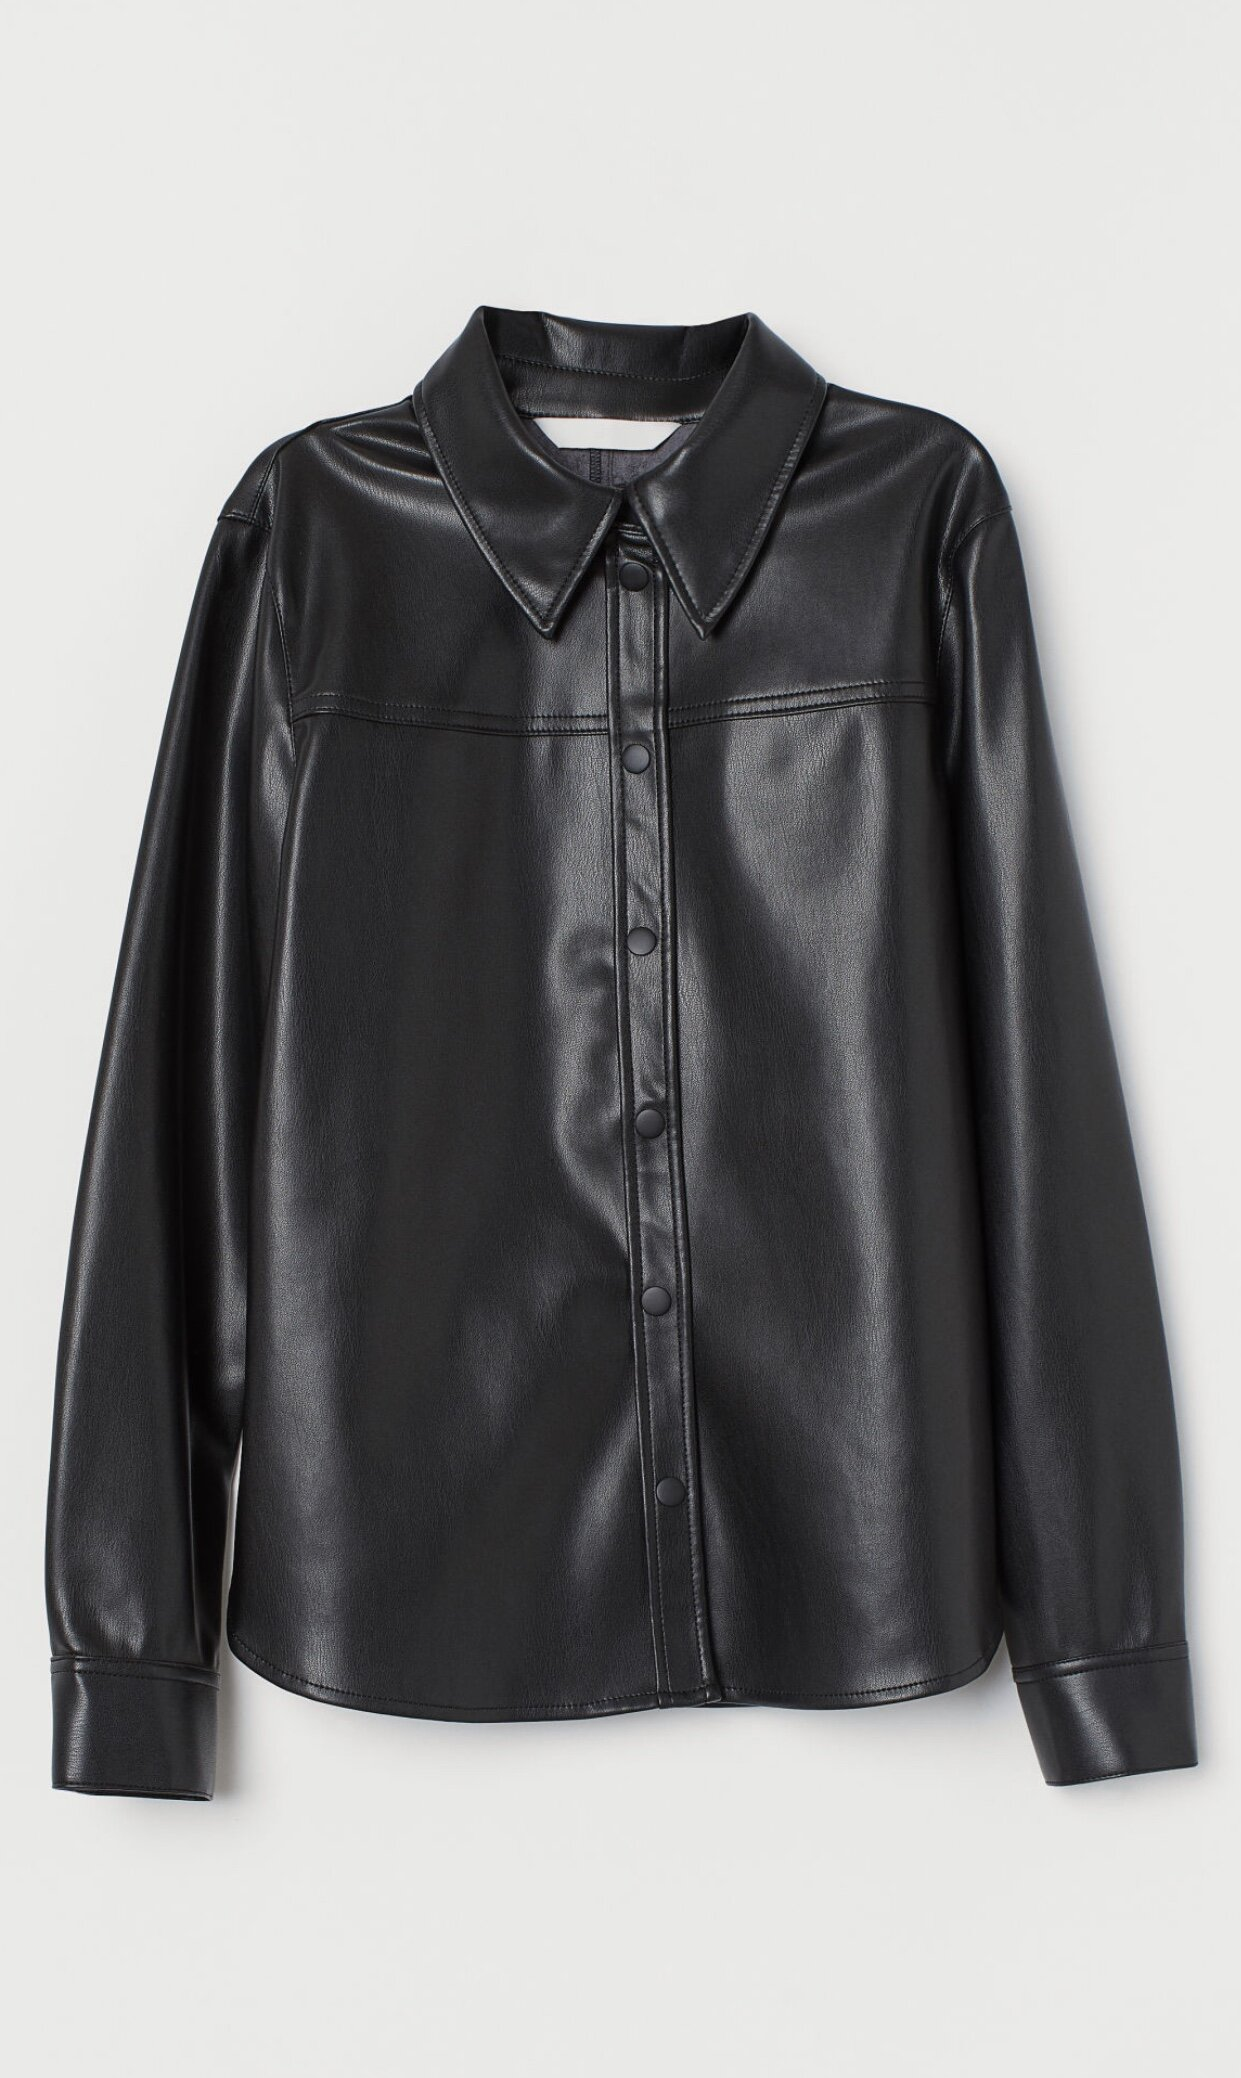 IMITATION LEATHER SHIRT